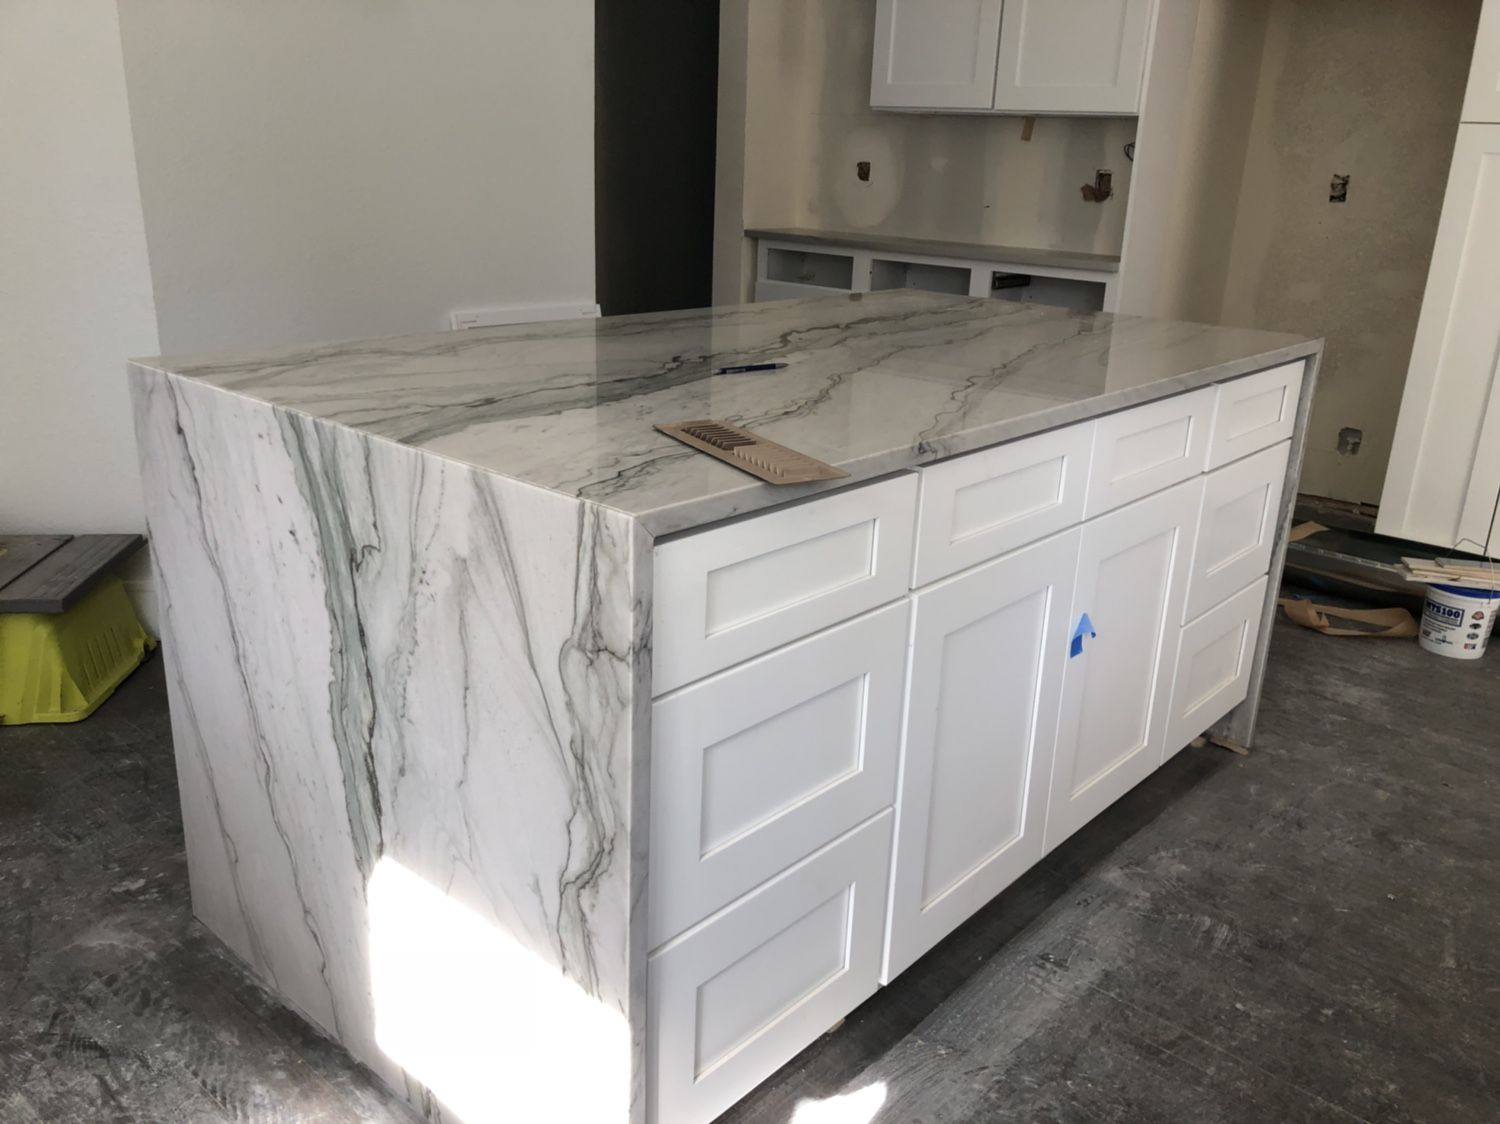 Waterfall Counter Tops And Outlets Electrician Talk